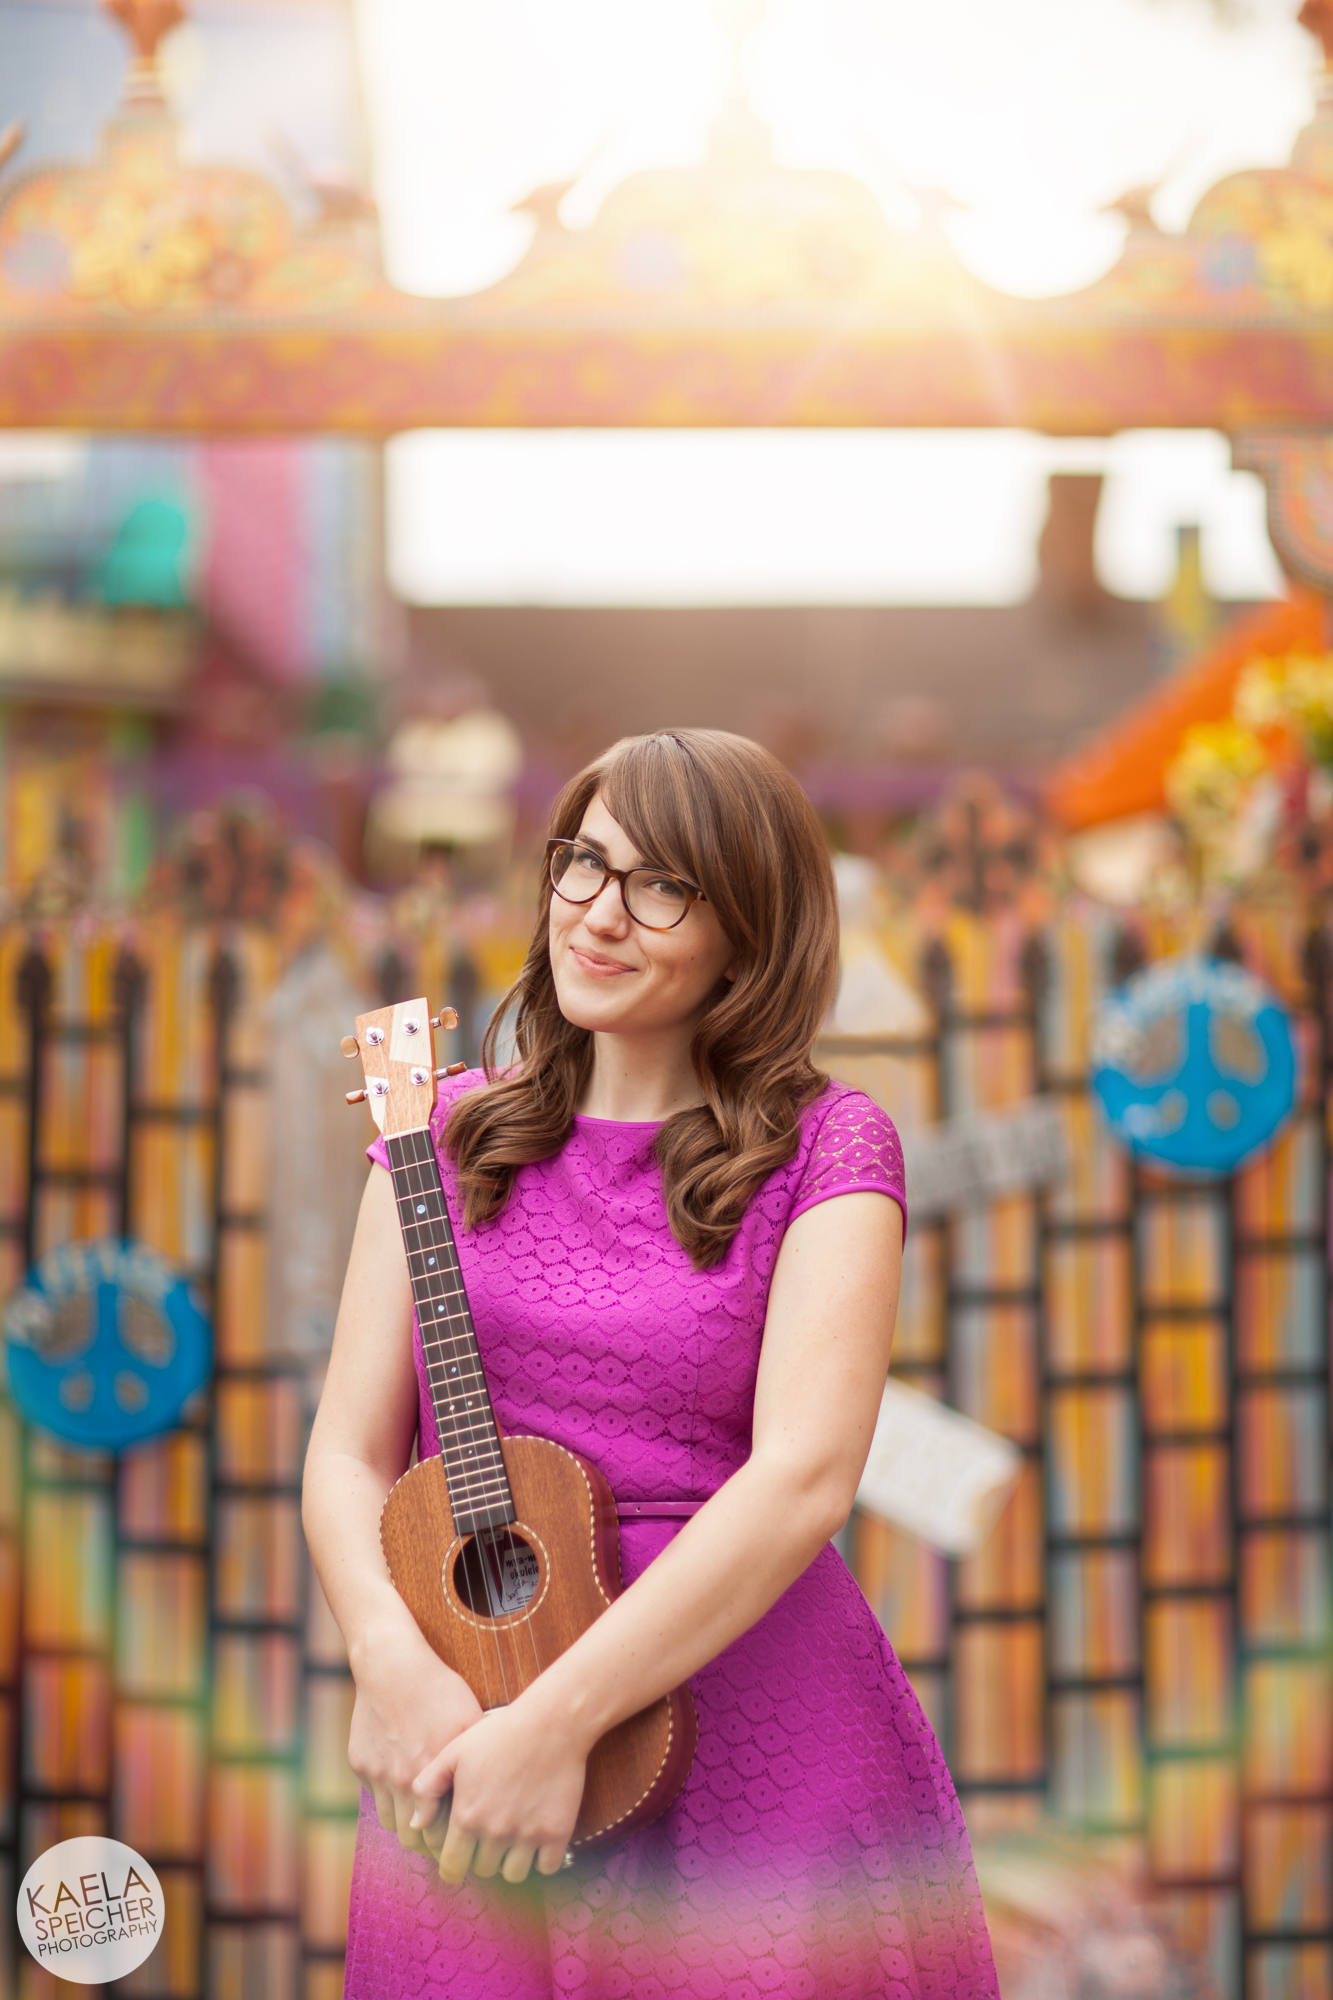 Ukulele Rainbow by Kaela Speicher Photography